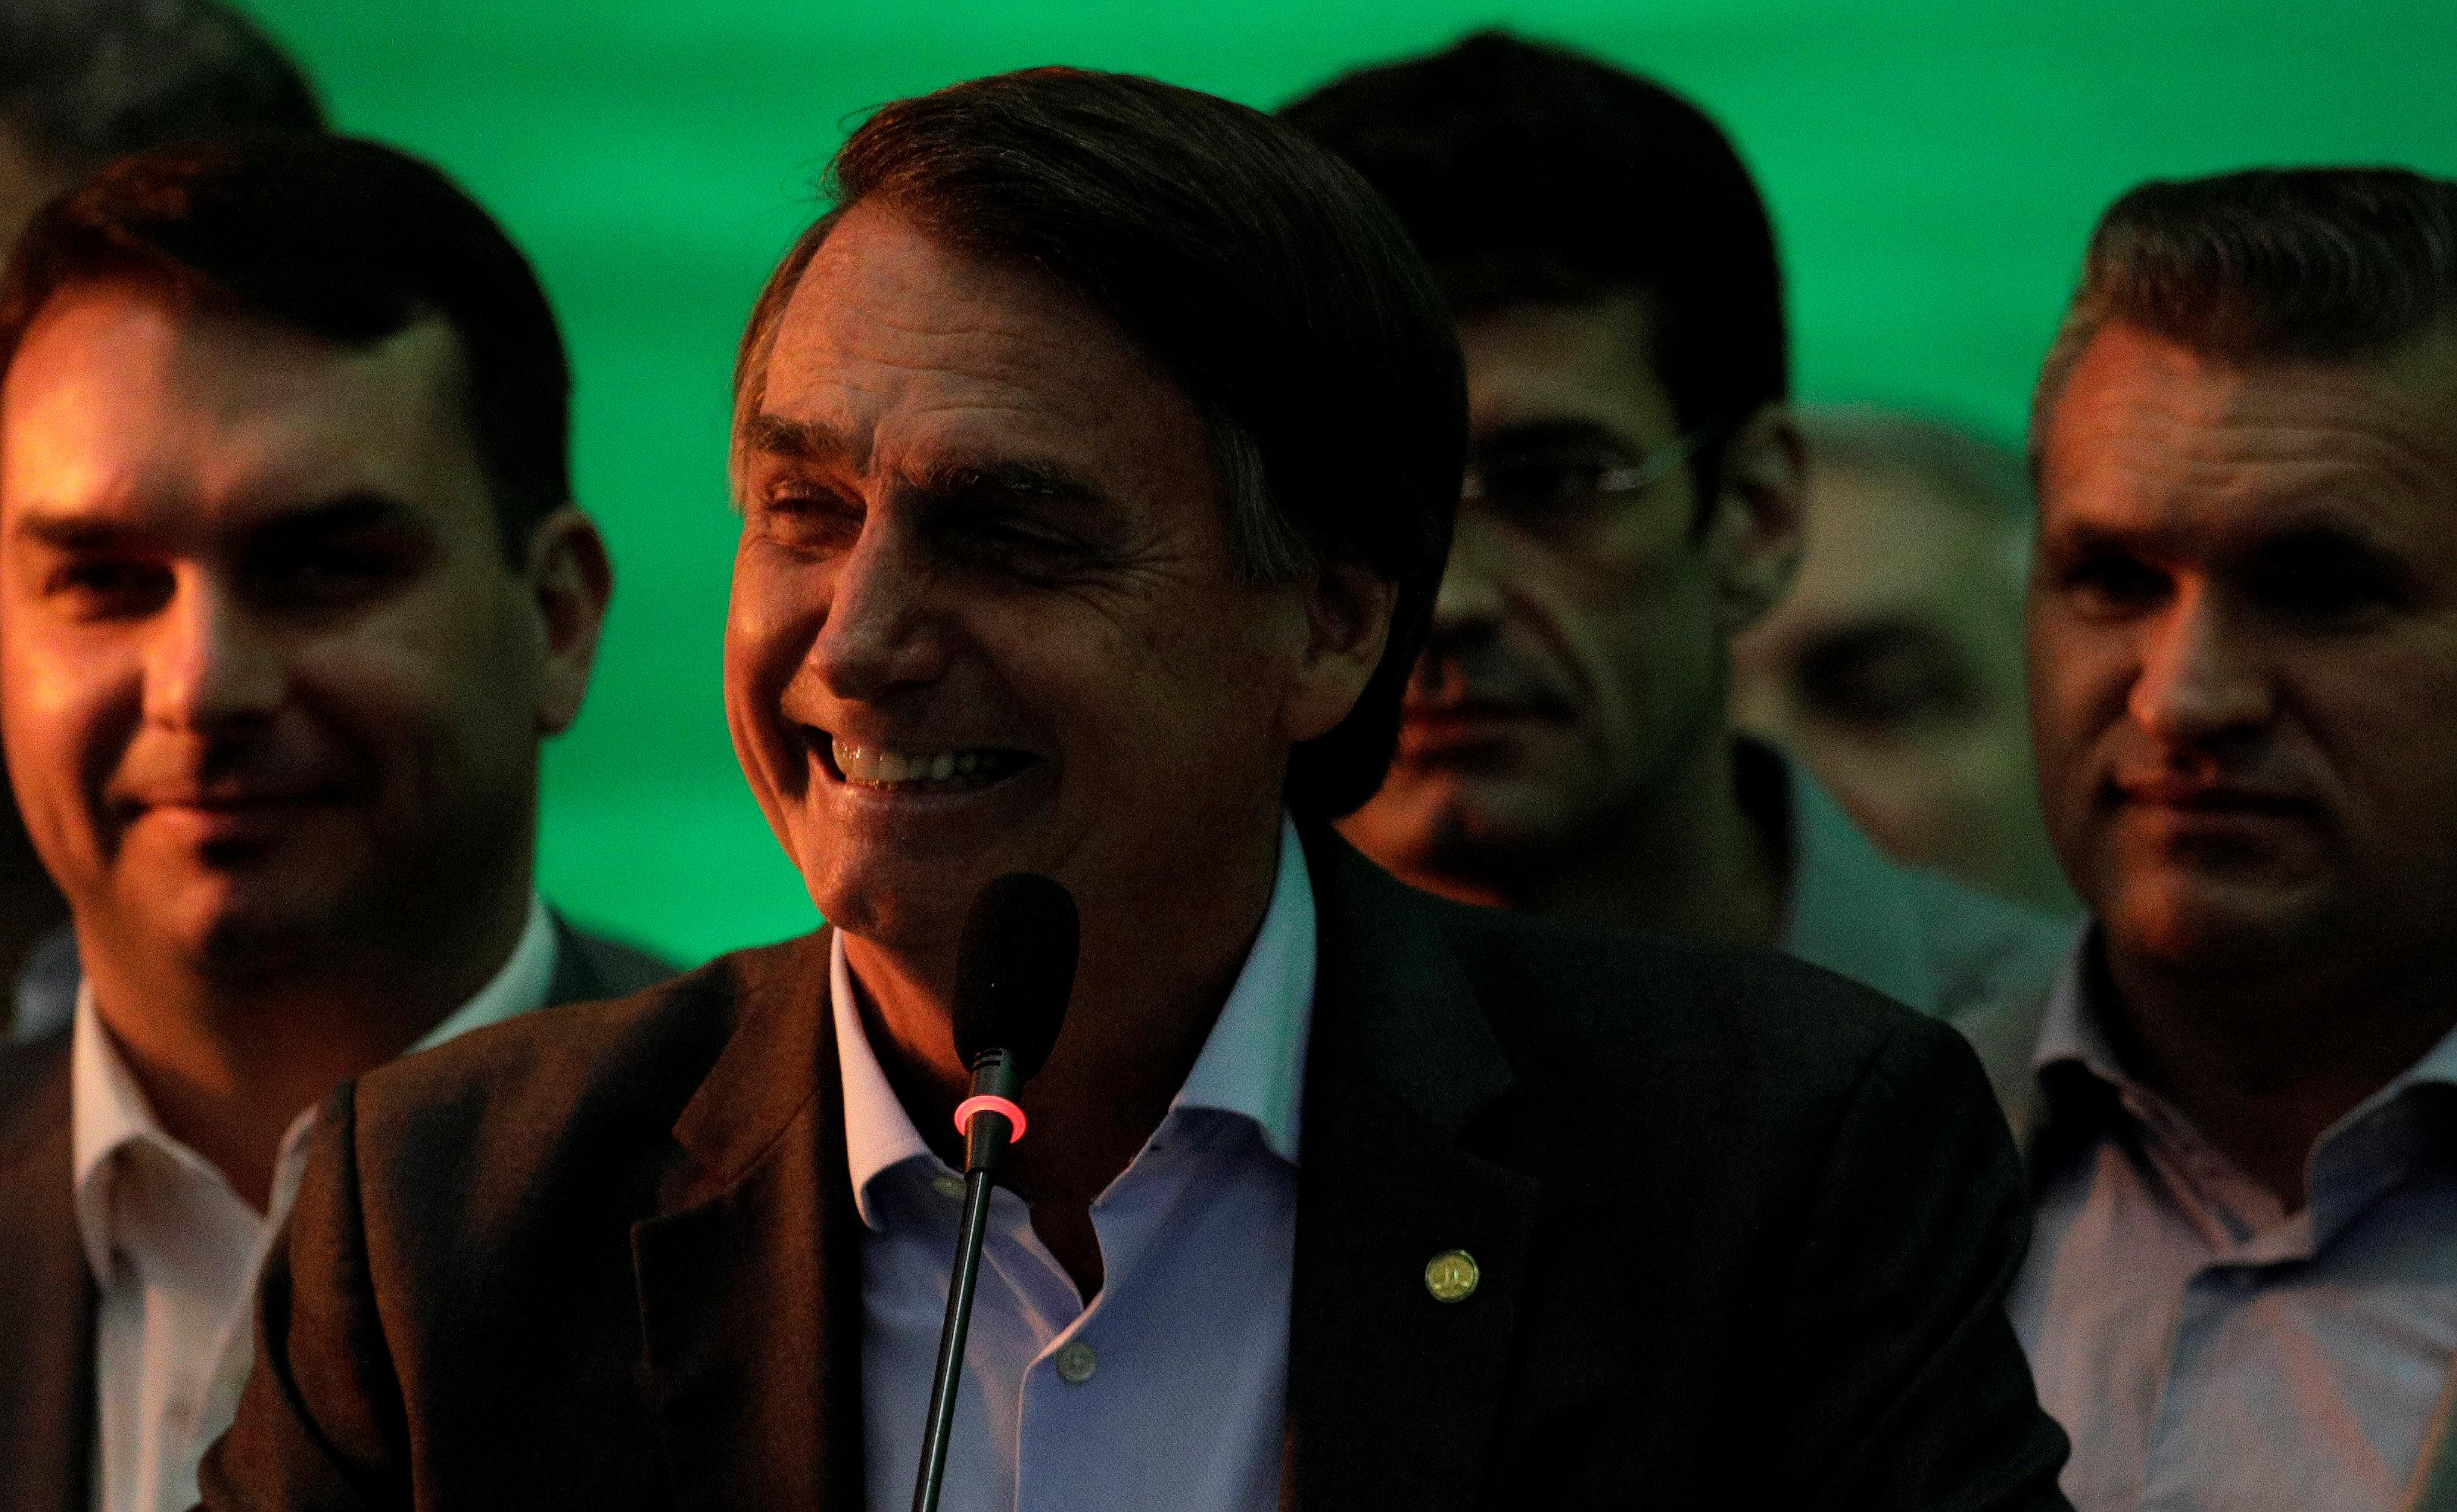 Federal deputy Jair Bolsonaro delivers a speech during the national convention of the Party for Socialism and Liberation (PSL) where he is to be formalised as a candidate for the Presidency of the Republic, in Rio de Janeiro, Brazil July 22, 2018. Ricardo Moraes